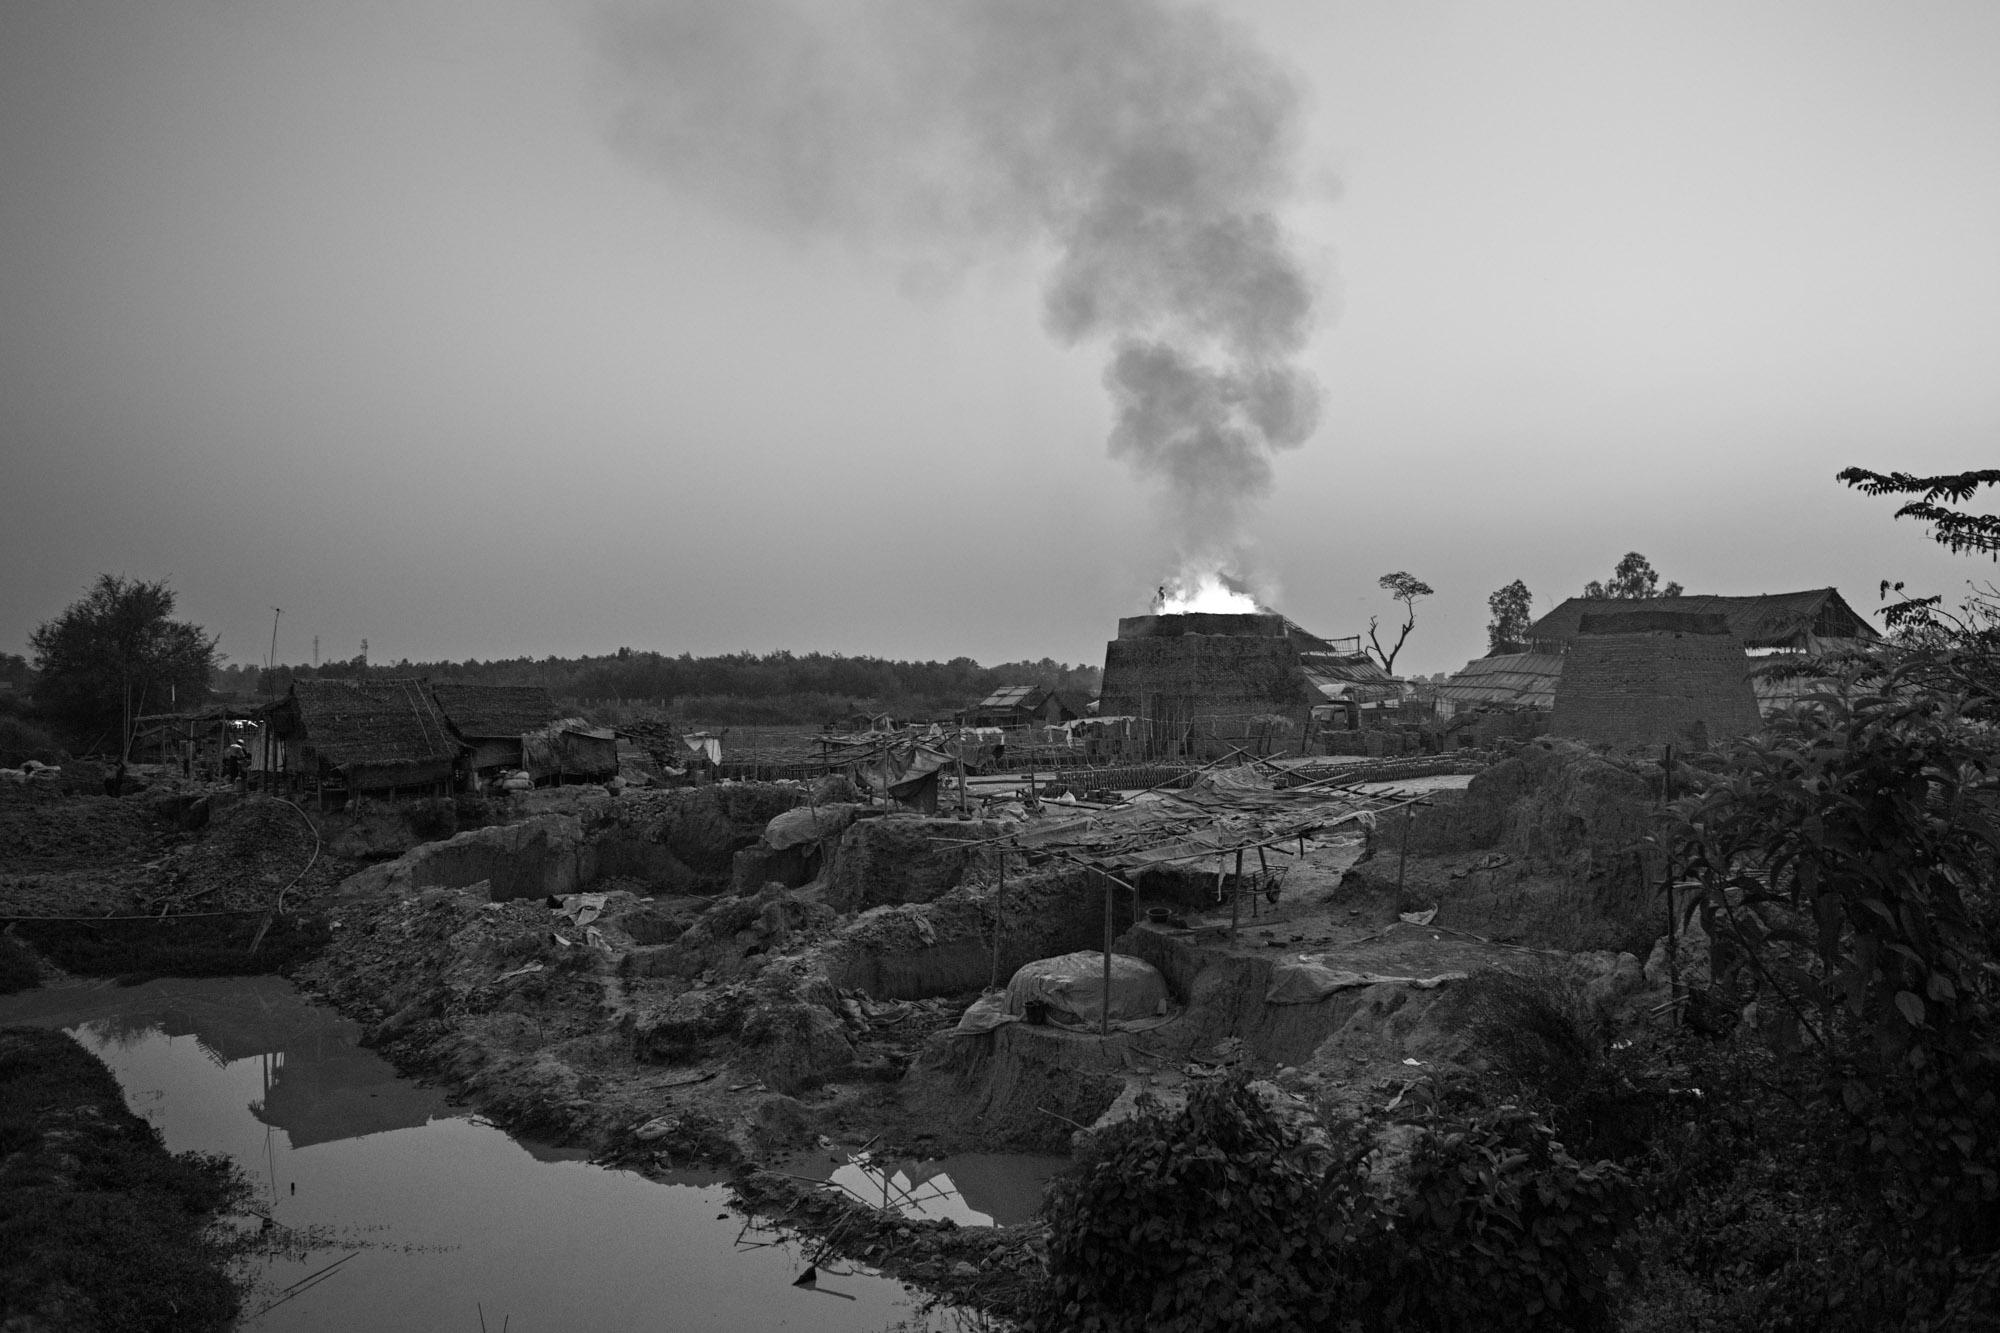 Fire and smoke from a brick kiln burns into the dusk.